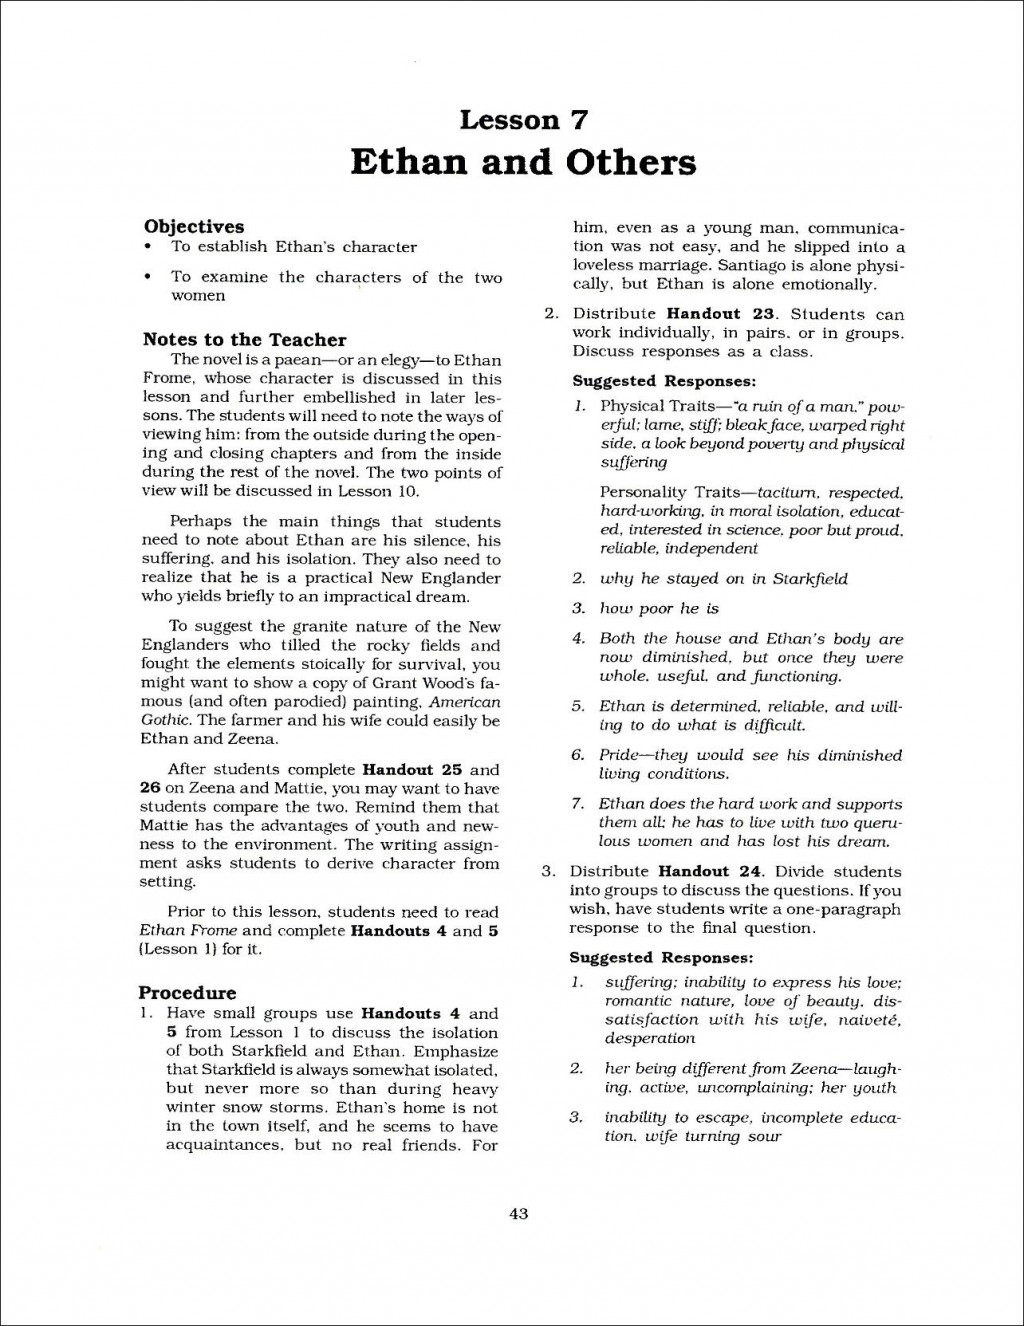 006 Cloning Essay Example 3601520793 Essays On Ethan Unique Prompts Introduction Large